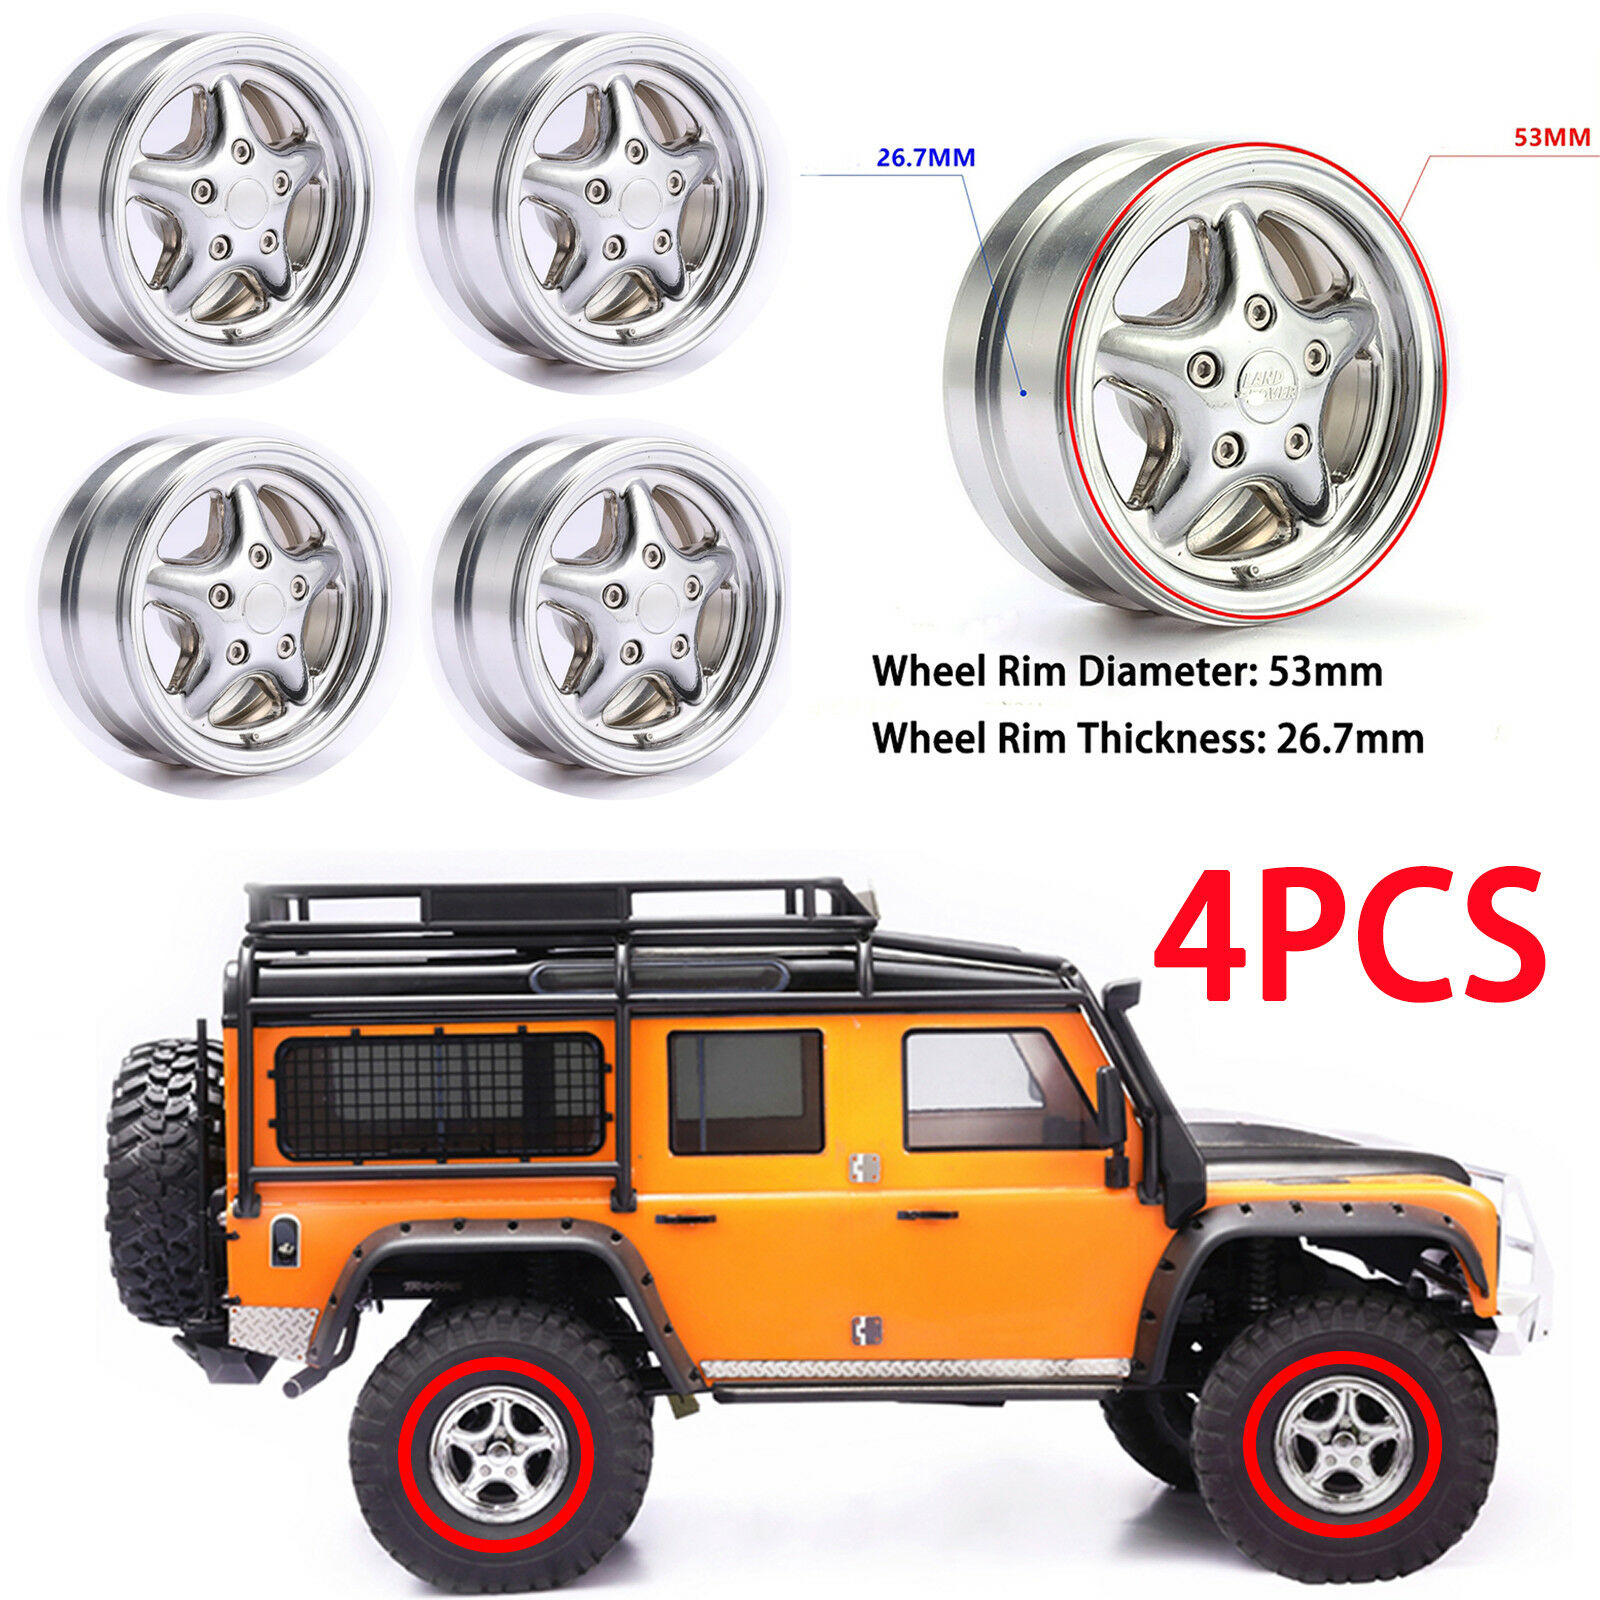 4PCS 1.9  Metal Wheel Hub Rims Set for Traxxas TRX4 Land Over RC4WD Other RC Car